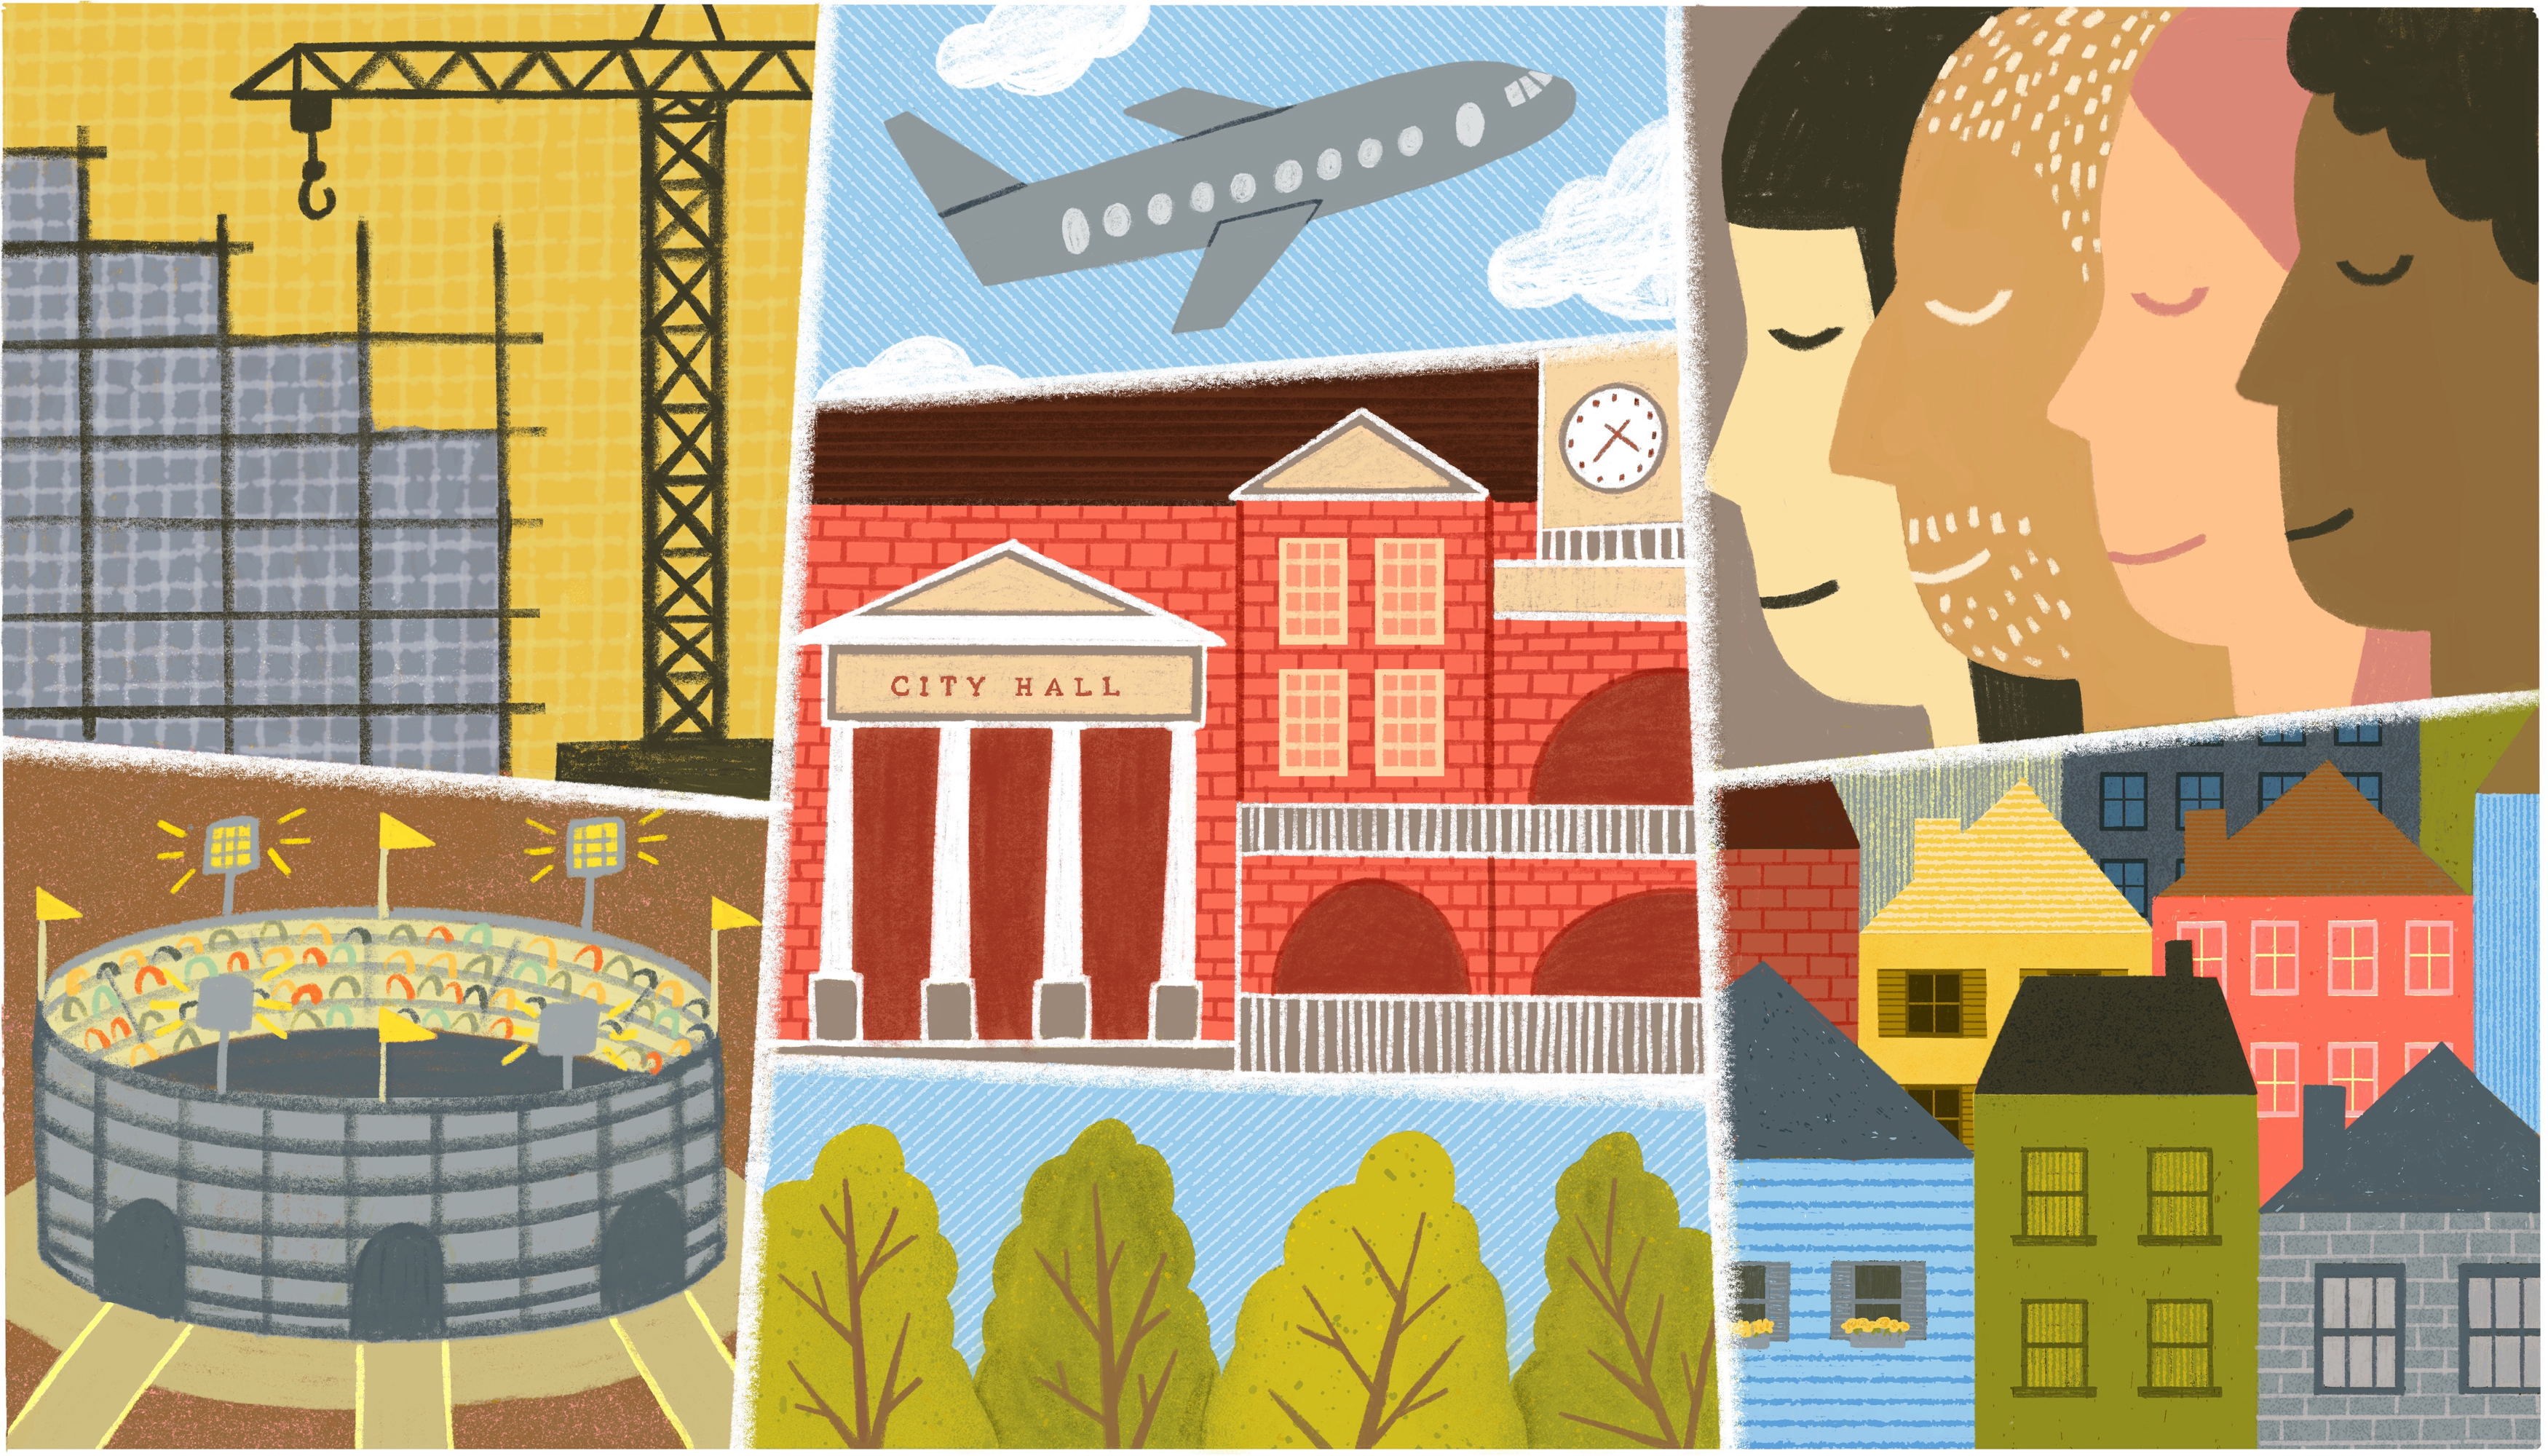 A collage image that includes a construction crane working on a tall building, a busy sports arena, city hall buildings, and airplane and small single family homes. Illustration.